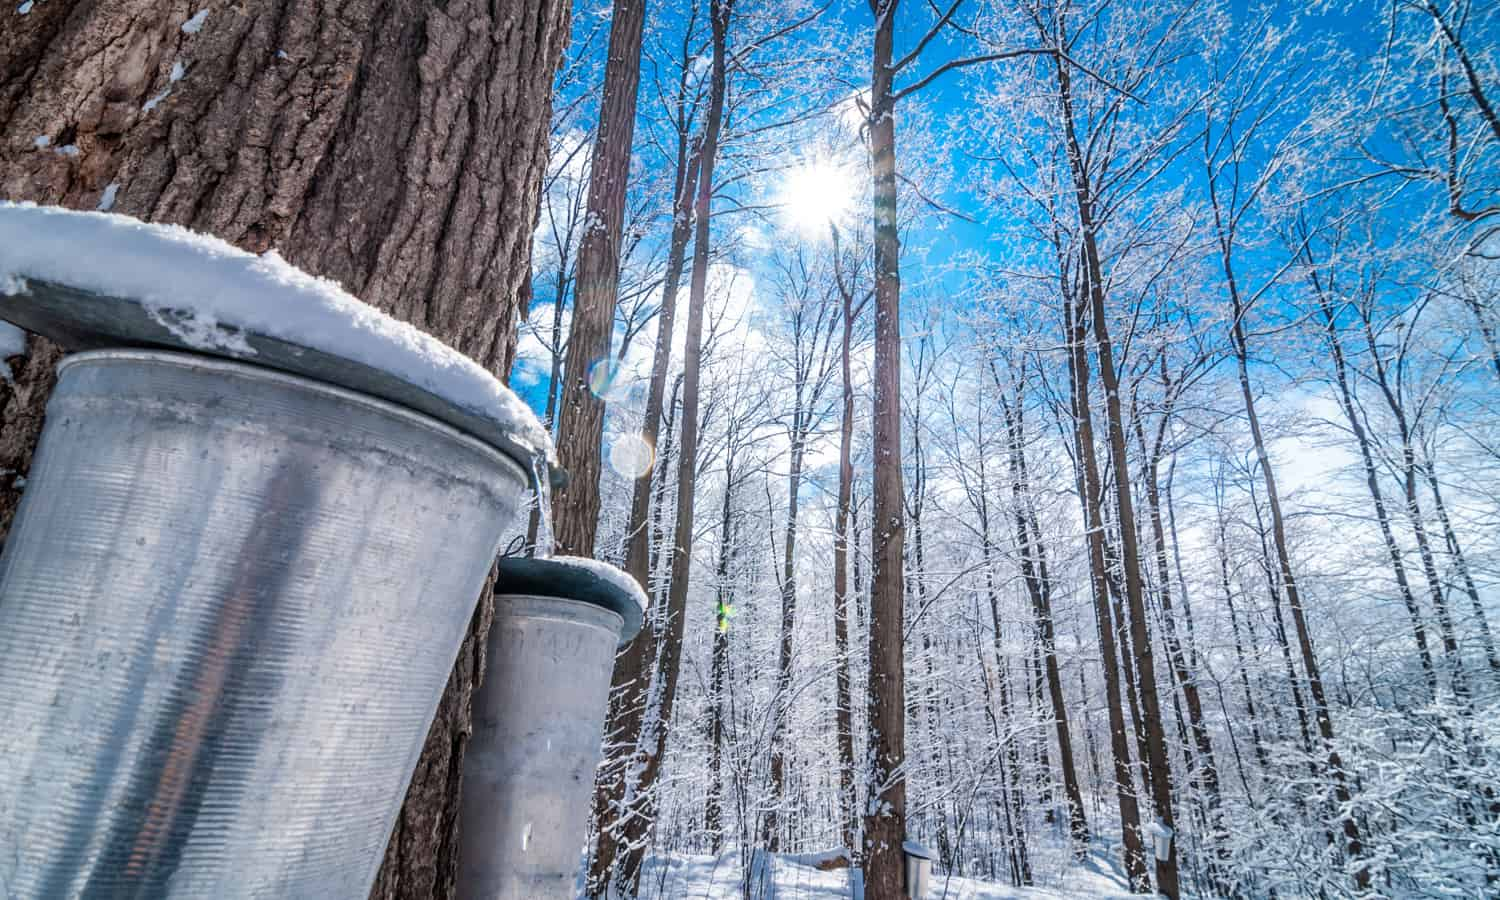 The maple sugar industry is big business in Vermont. But with warming winters, will liquid gold be sapped?